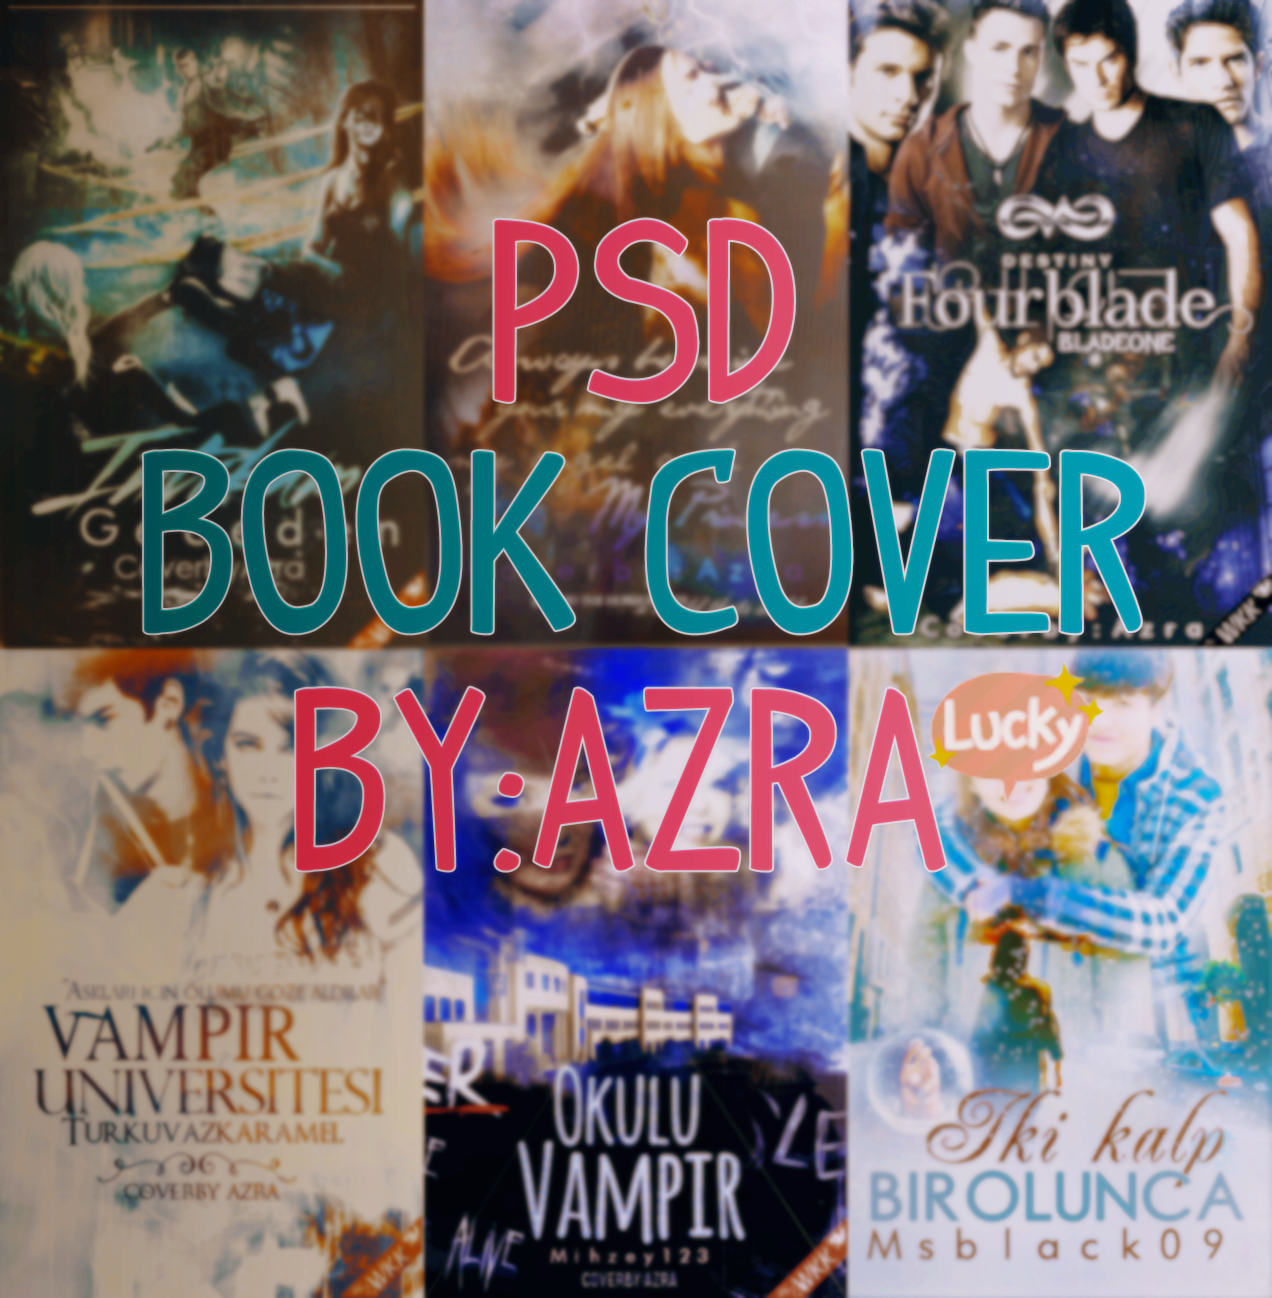 Wattpad Book Cover Psd : Book cover s psd header by azraaavc on deviantart